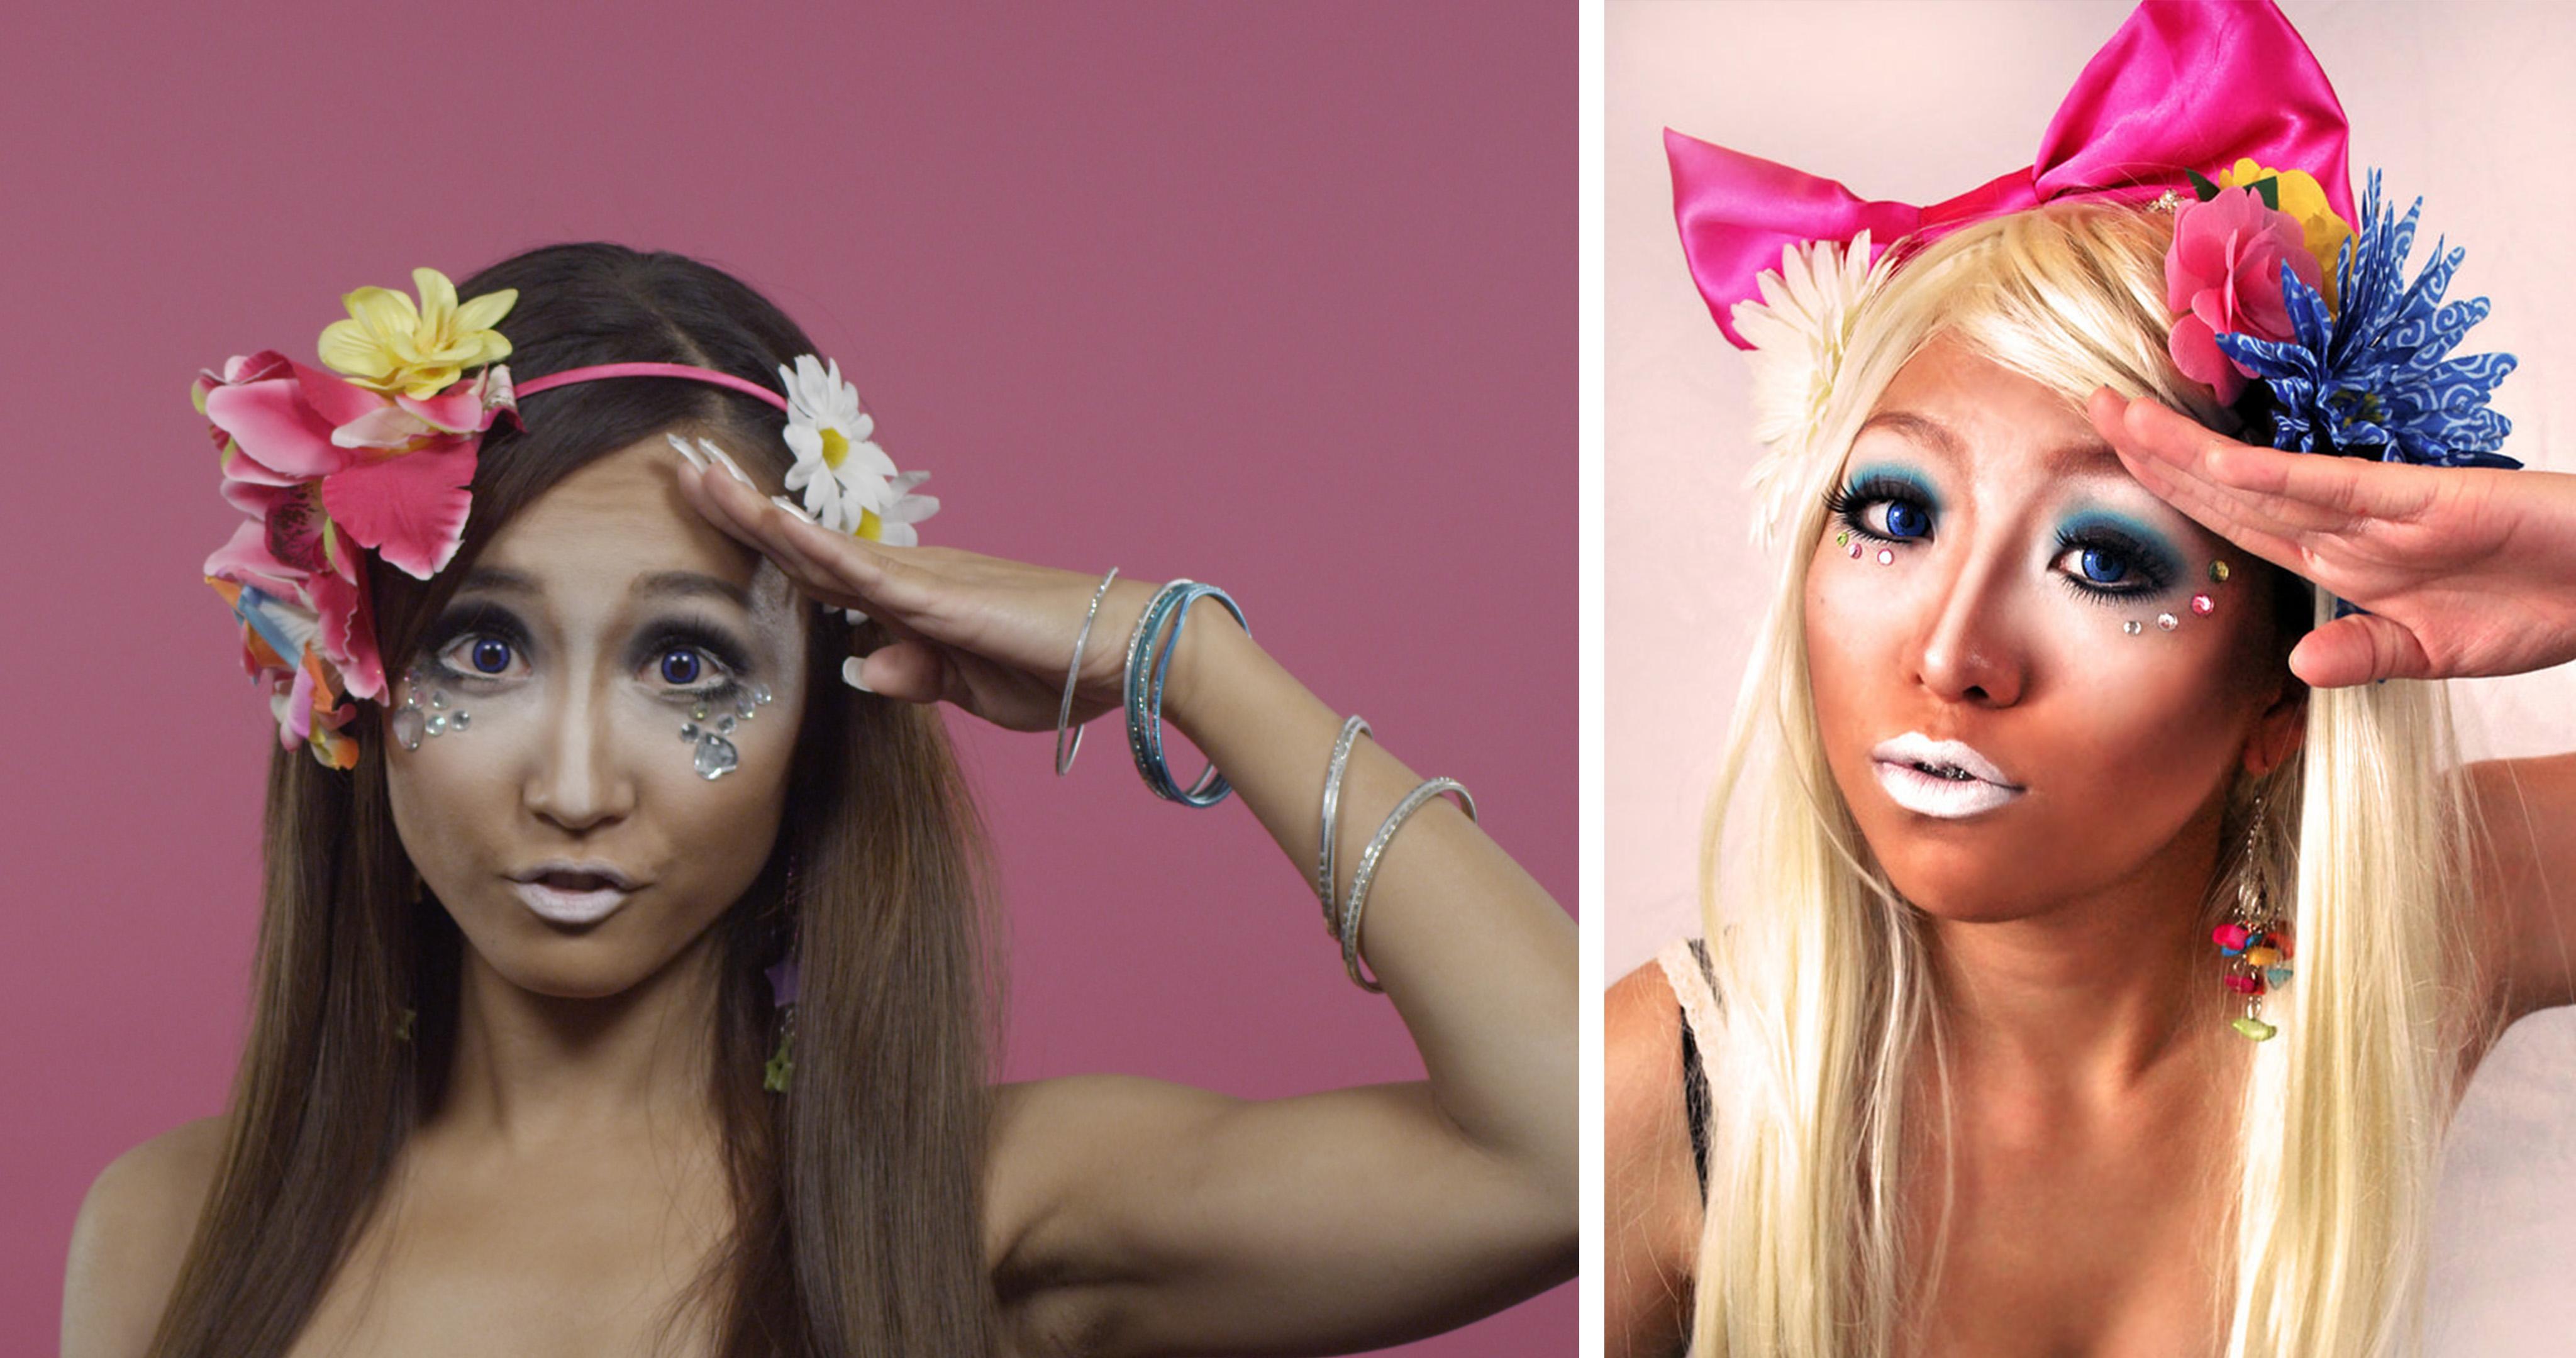 On the other end of the '90s spectrum, ganguro style swept through the streets of Tokyo. Ignoring all past trends and social standards, ganguro embraced tan skin, defining makeup, and outrageous nails and accessories. If you want to witness the look for yourself, you can visit the Ganguro Cafe in Shibuya.